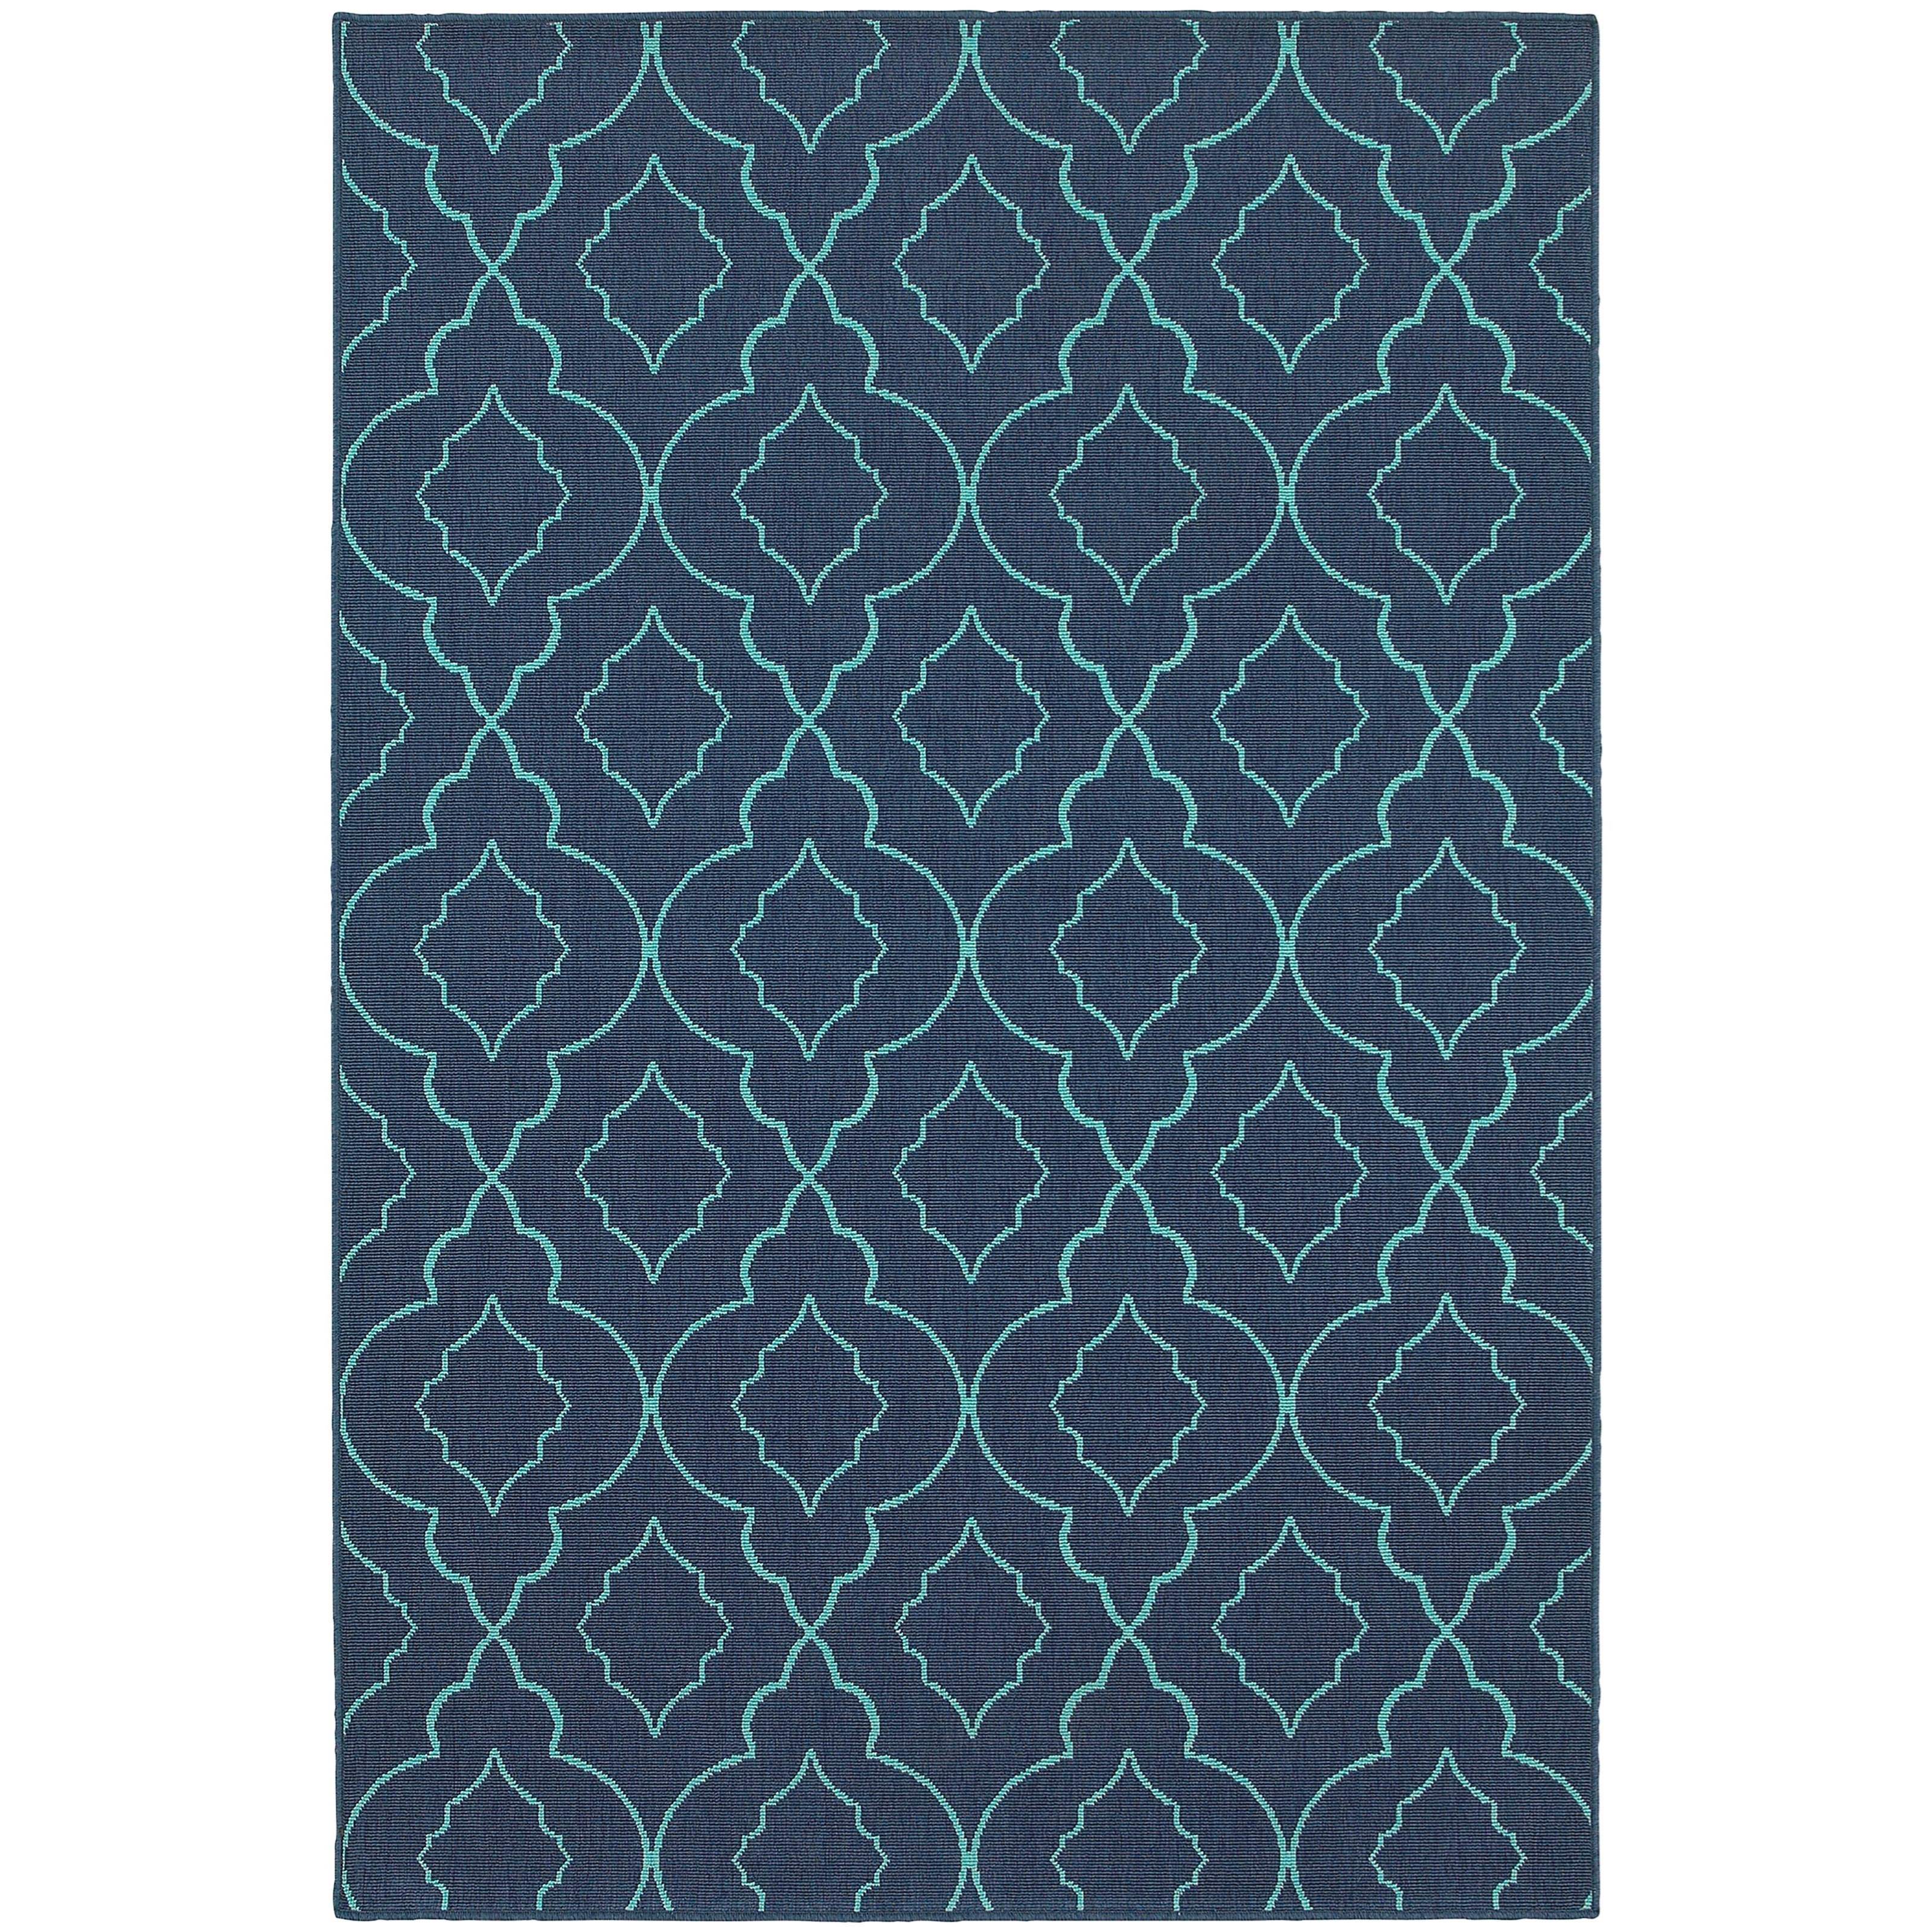 "Meridian 3' 7"" X  5' 6"" Rectangle Area Rug by Oriental Weavers at Godby Home Furnishings"